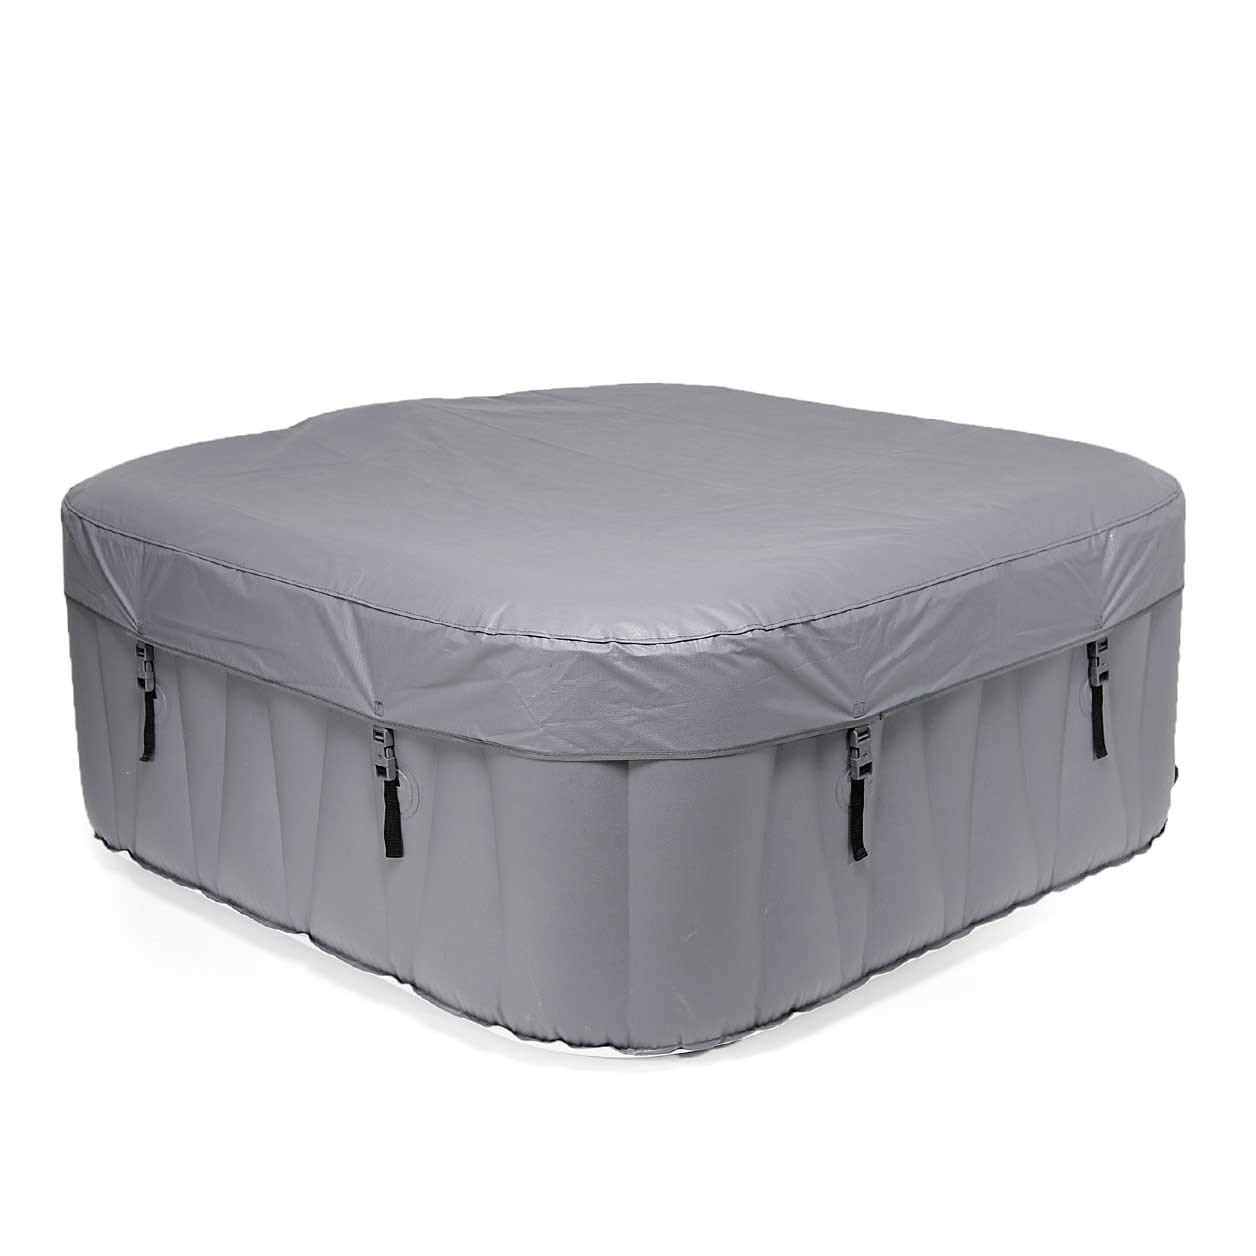 WAVE Spa Pacific Inflatable HotTub, Hot Tub Integrated Heater /& Compressor 2-4 Person, Black